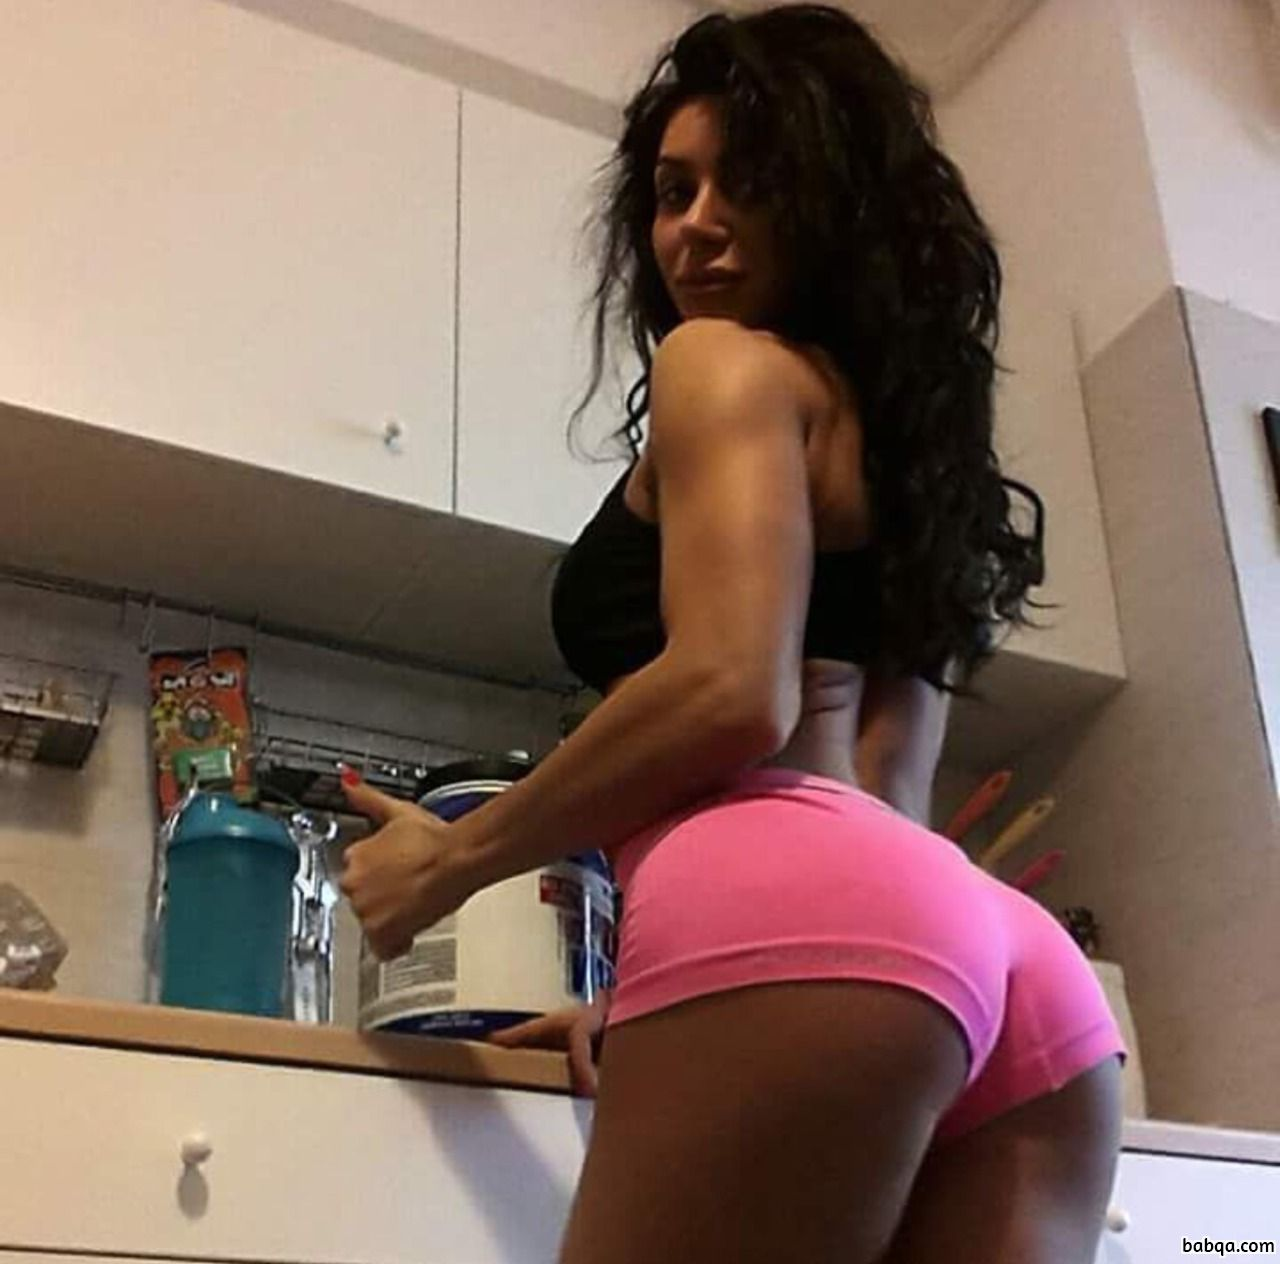 women with booty pics repost from girlsthatcurl – arab hot girl facebook